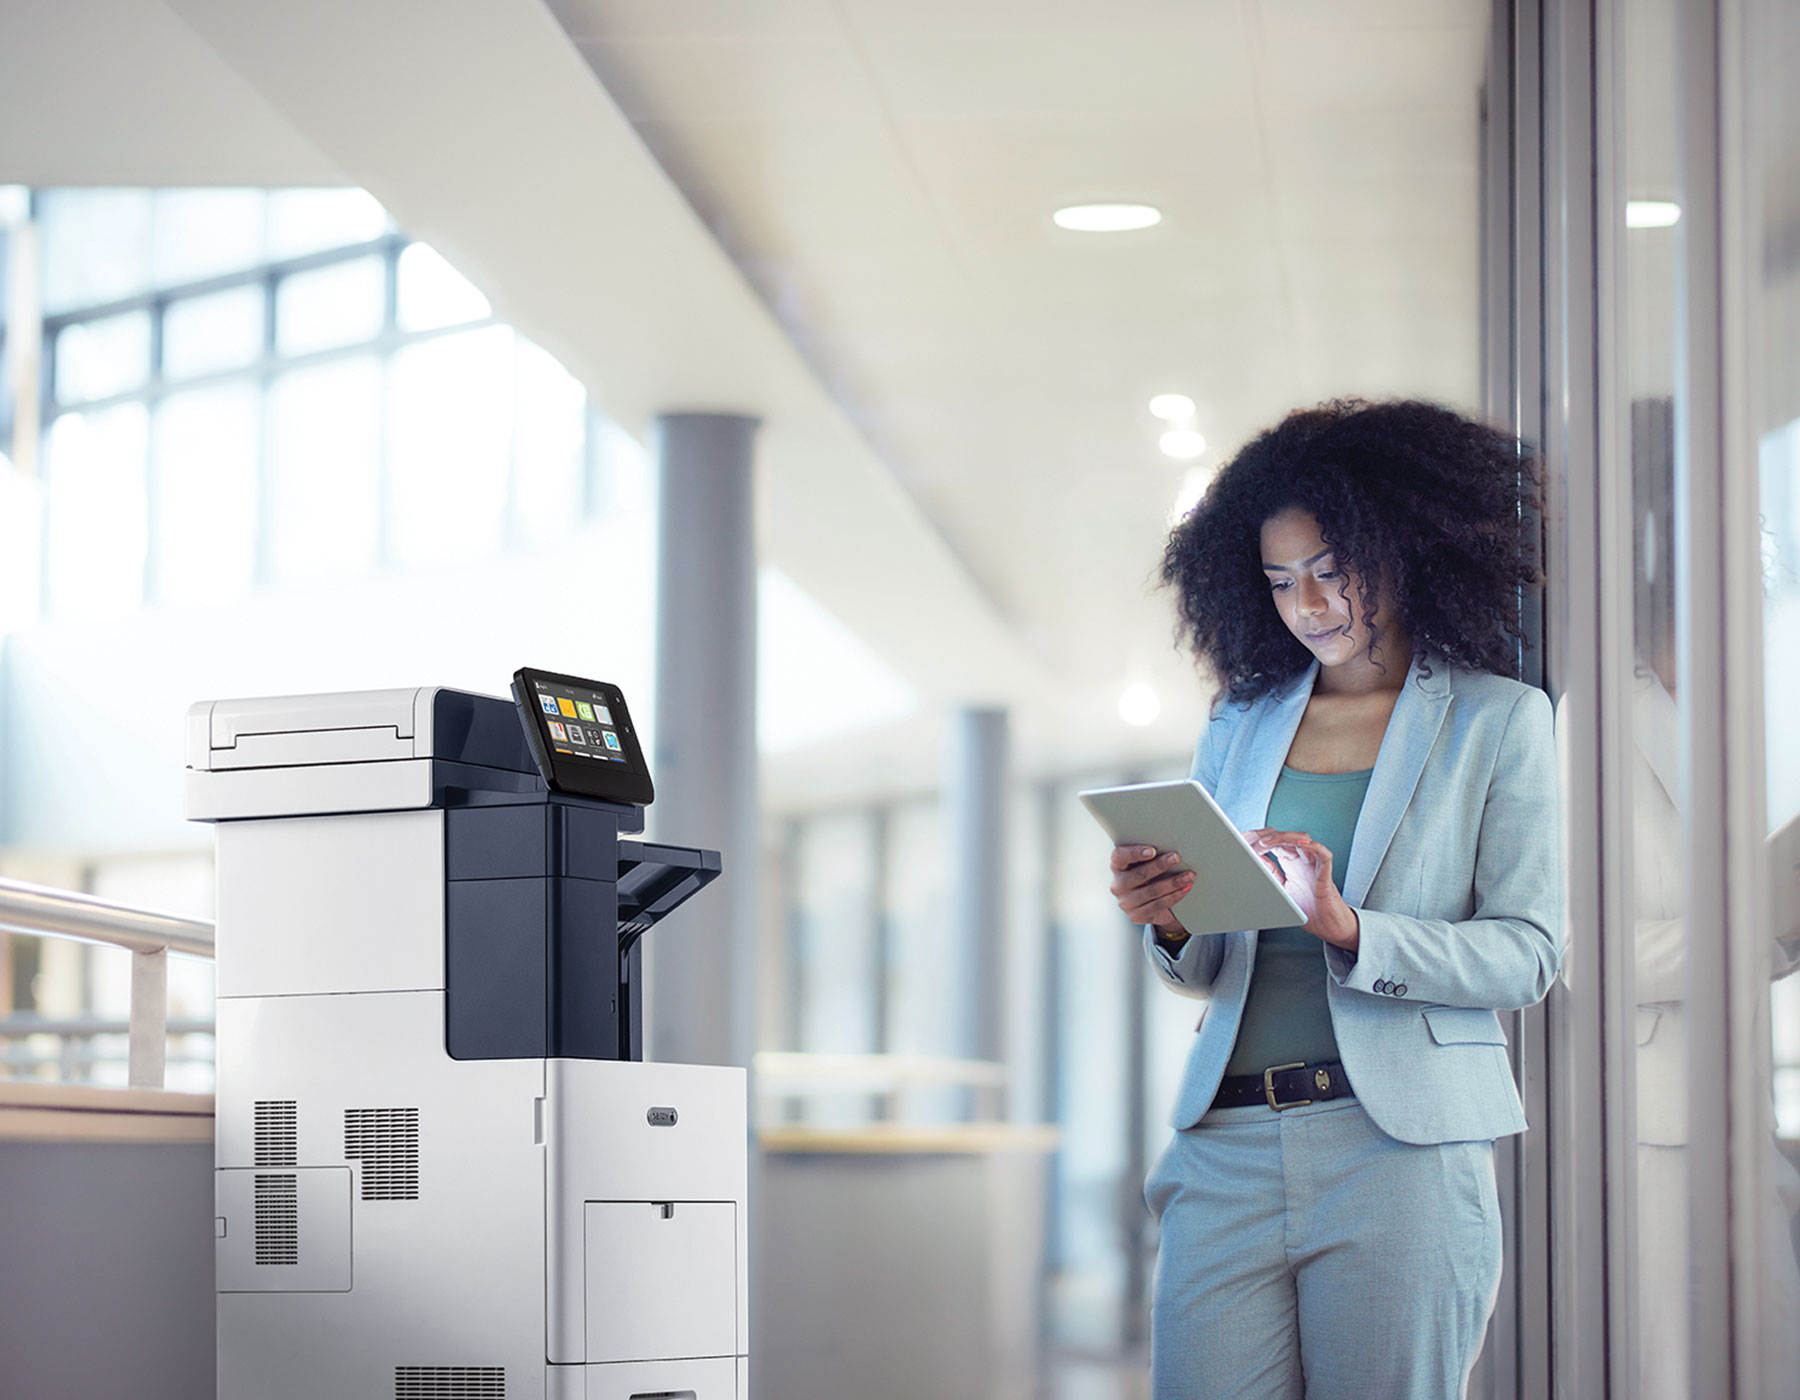 A young woman standing next to a large office printer while looking at her tablet.